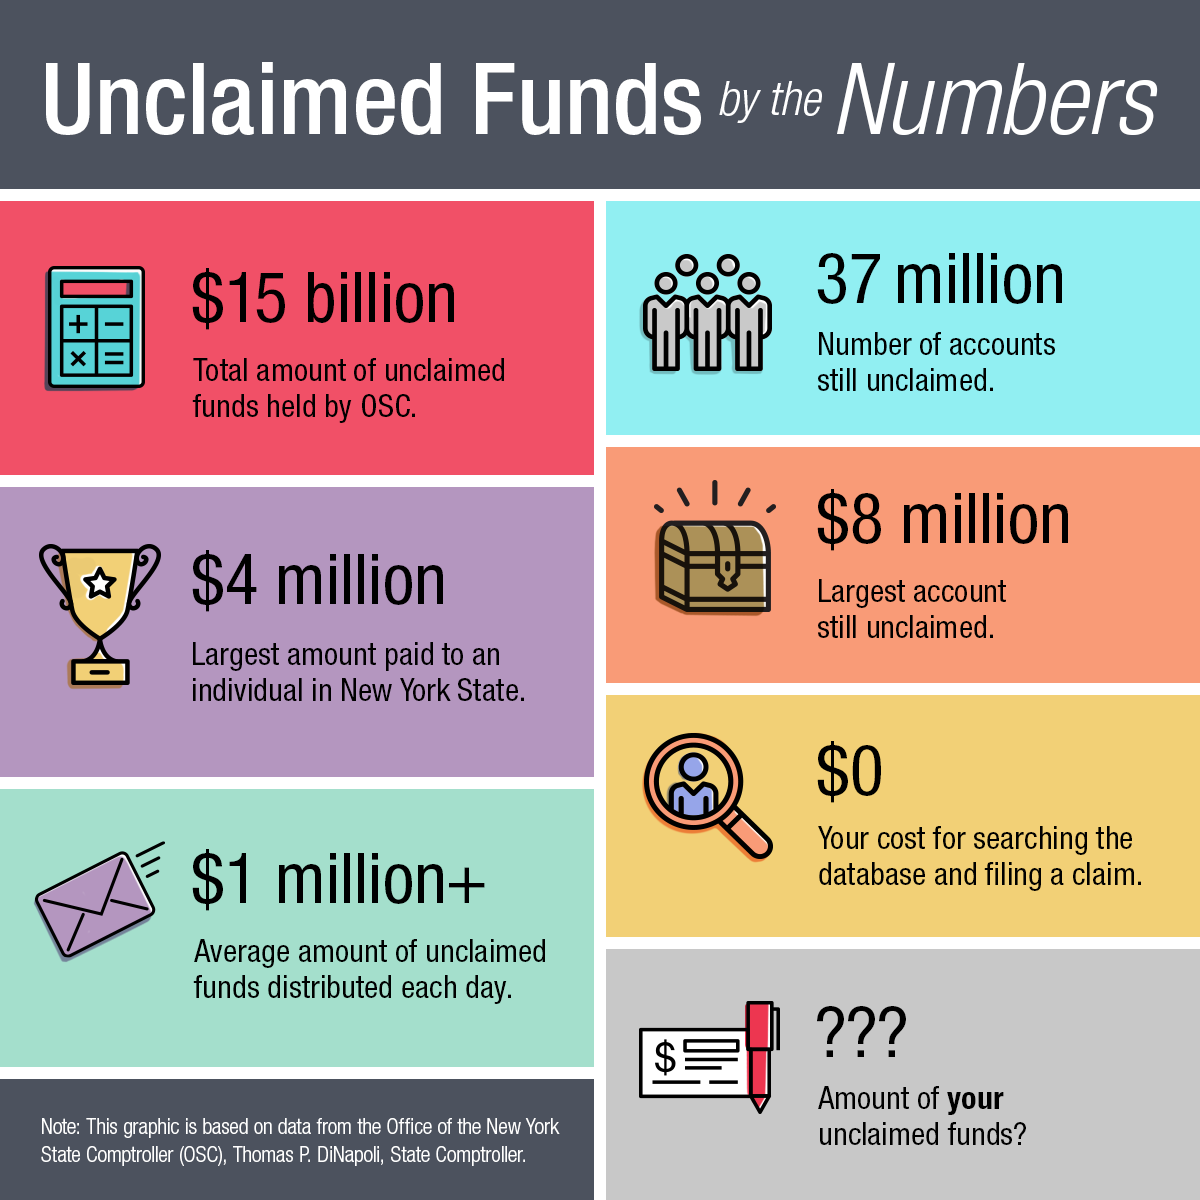 Lost Money — Unclaimed Funds by the Numbers